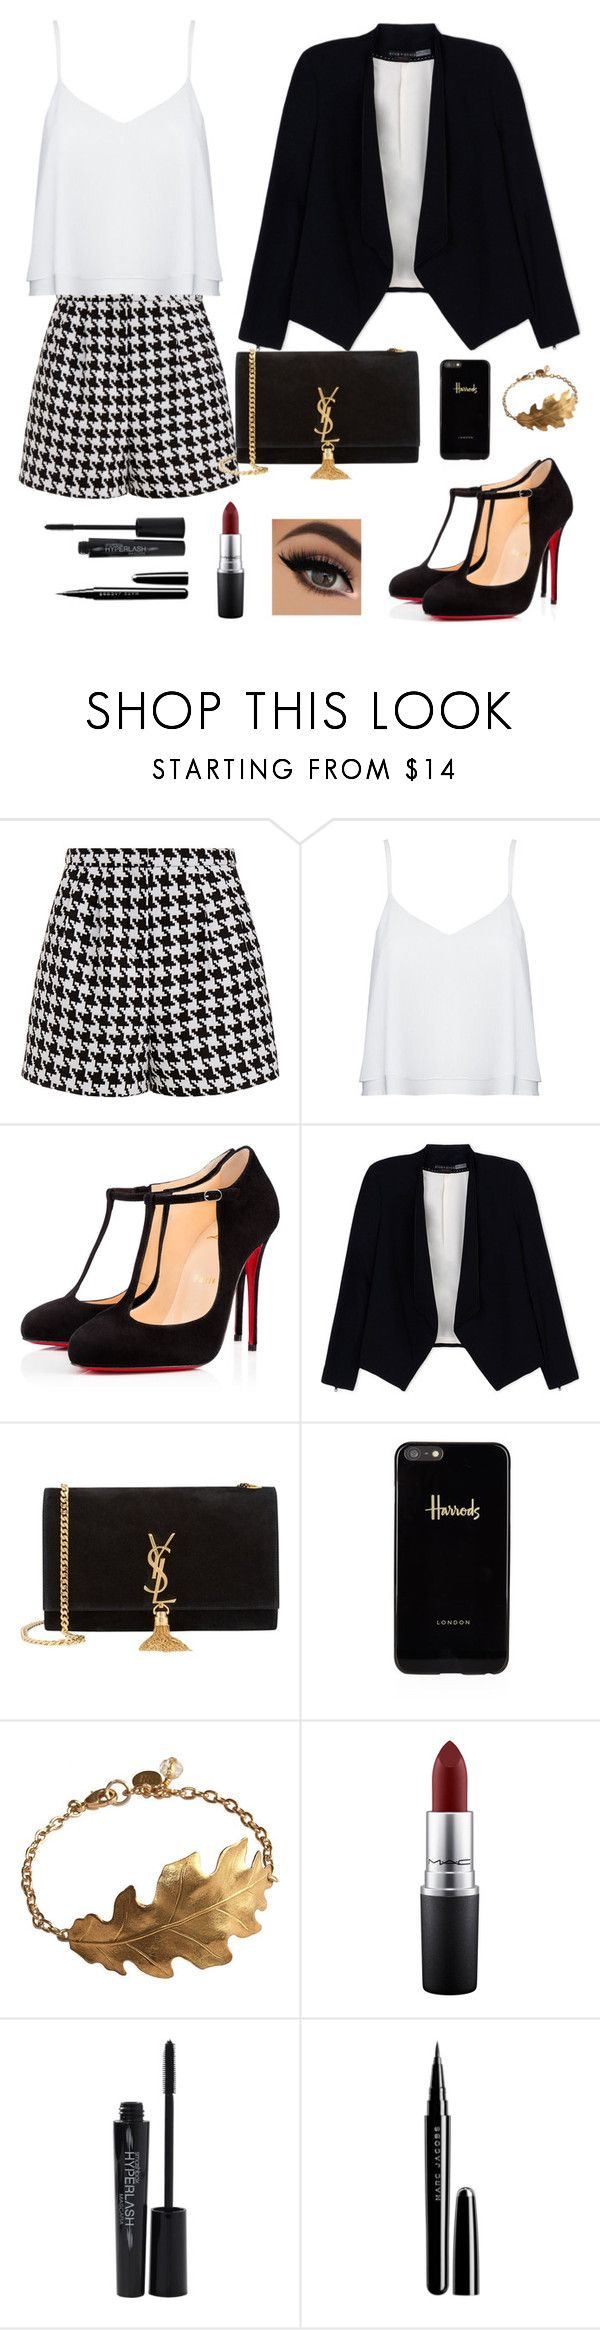 """Untitled #76"" by bertuki21 ❤ liked on Polyvore featuring Emma Cook, Alice + Olivia, Christian Louboutin, Yves Saint Laurent, Harrods, MAC Cosmetics, Smashbox, Marc Jacobs, women's clothing and women"